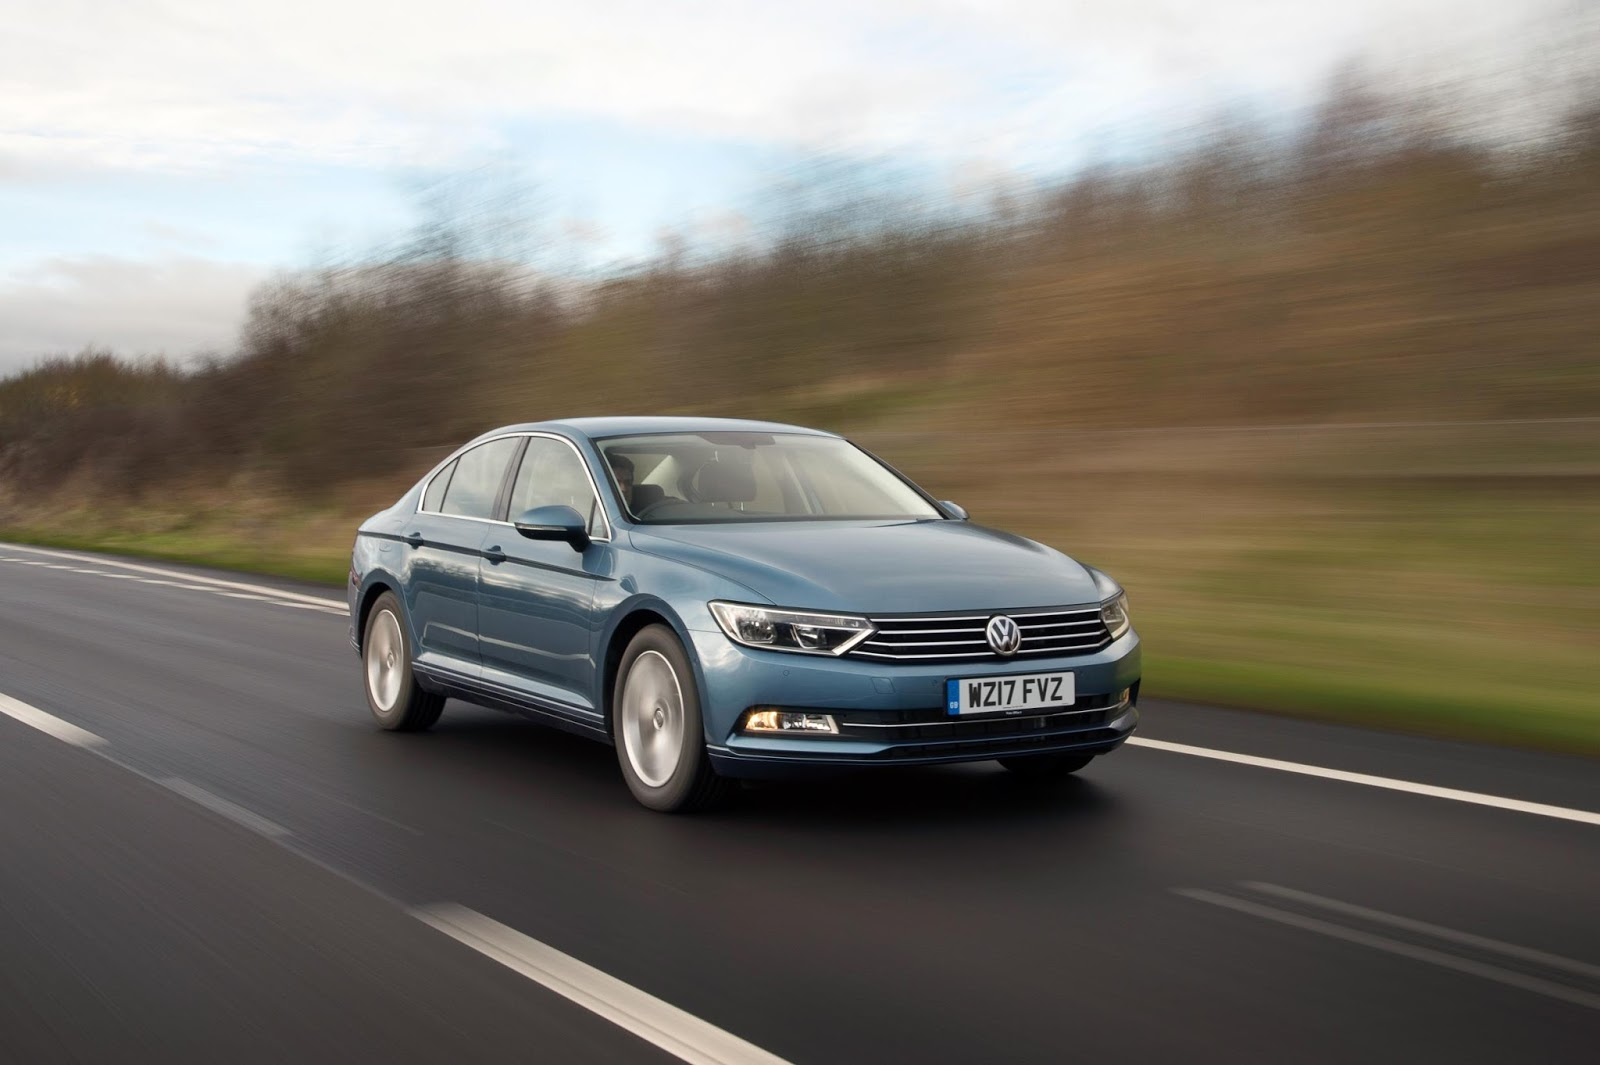 Vw Tsi Meaning >> The Motoring World: Volkswagen adds a new petrol range of engines from 1.4 litre to 2.0 litre ...